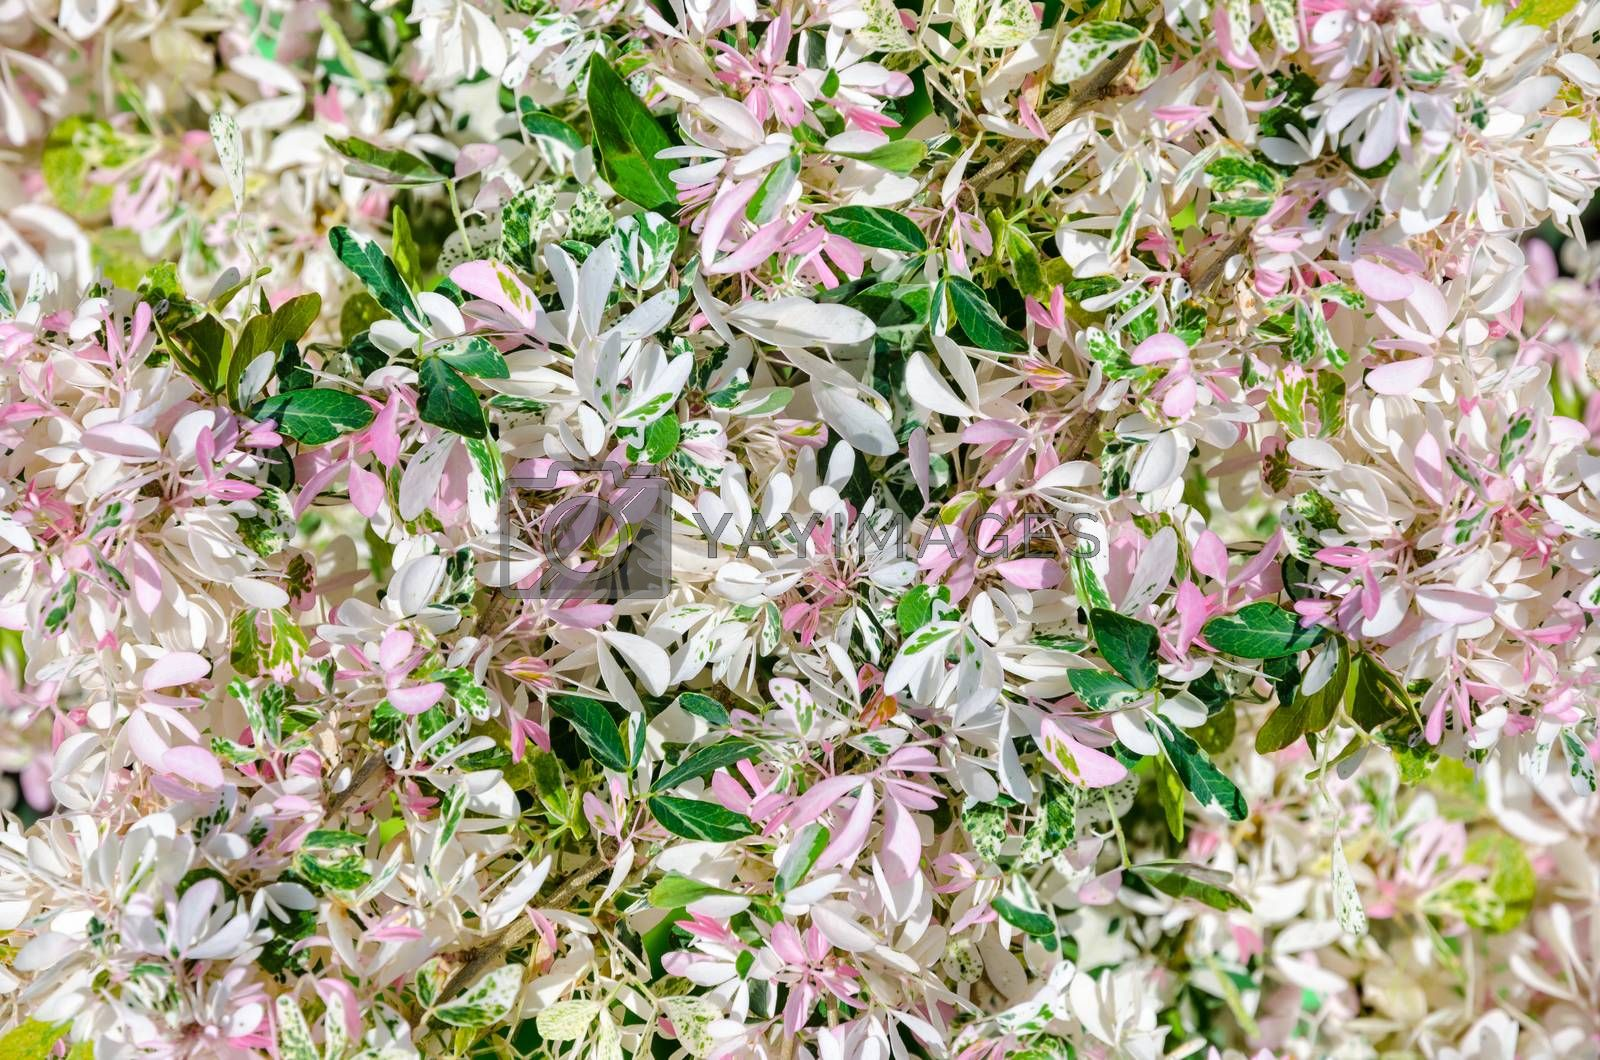 Beautiful nature of small leaves is white, green and pink on the tree of Pithecellobium duice or Madras Thorn for background